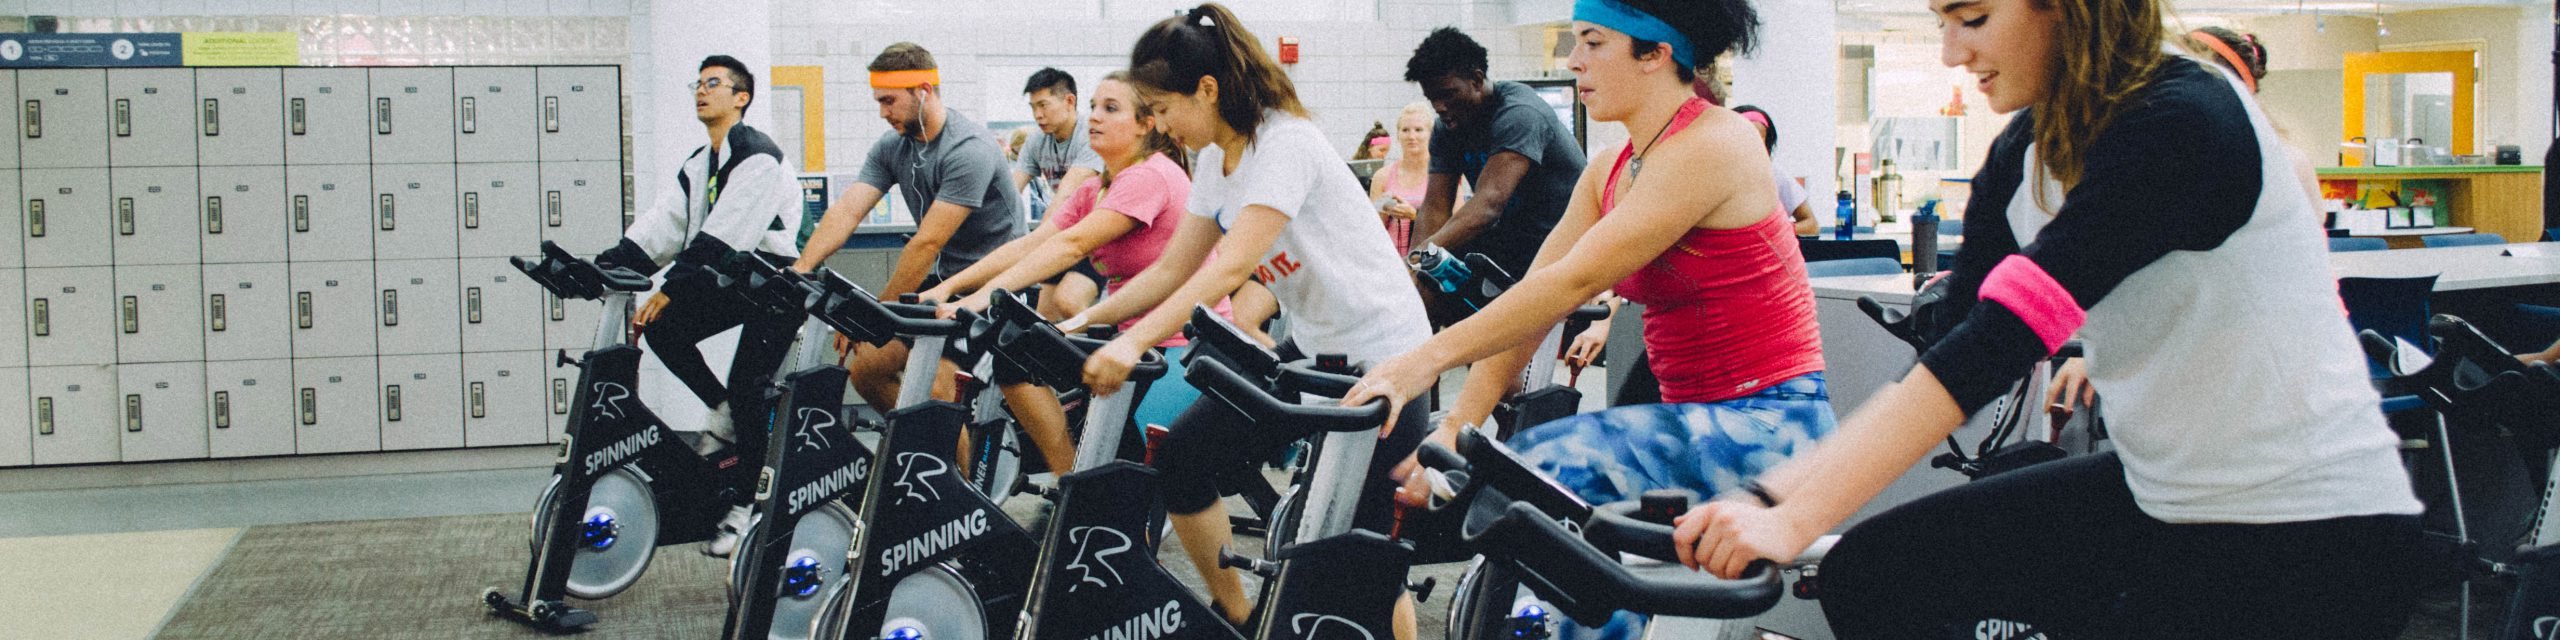 People participating in a spin class.